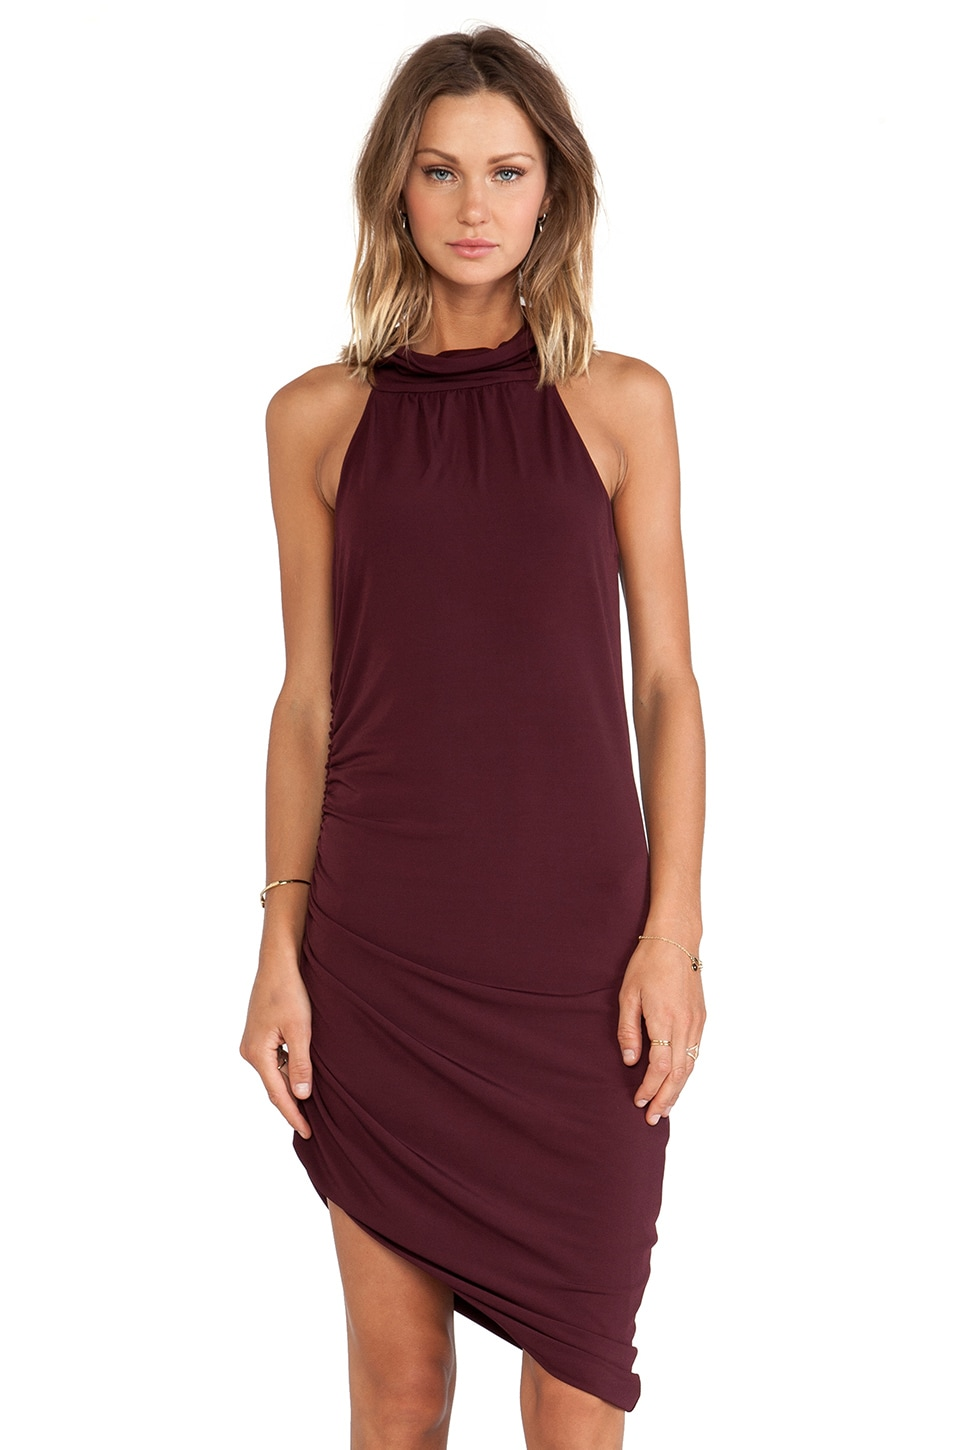 Backstage Lana Dress in Merlot